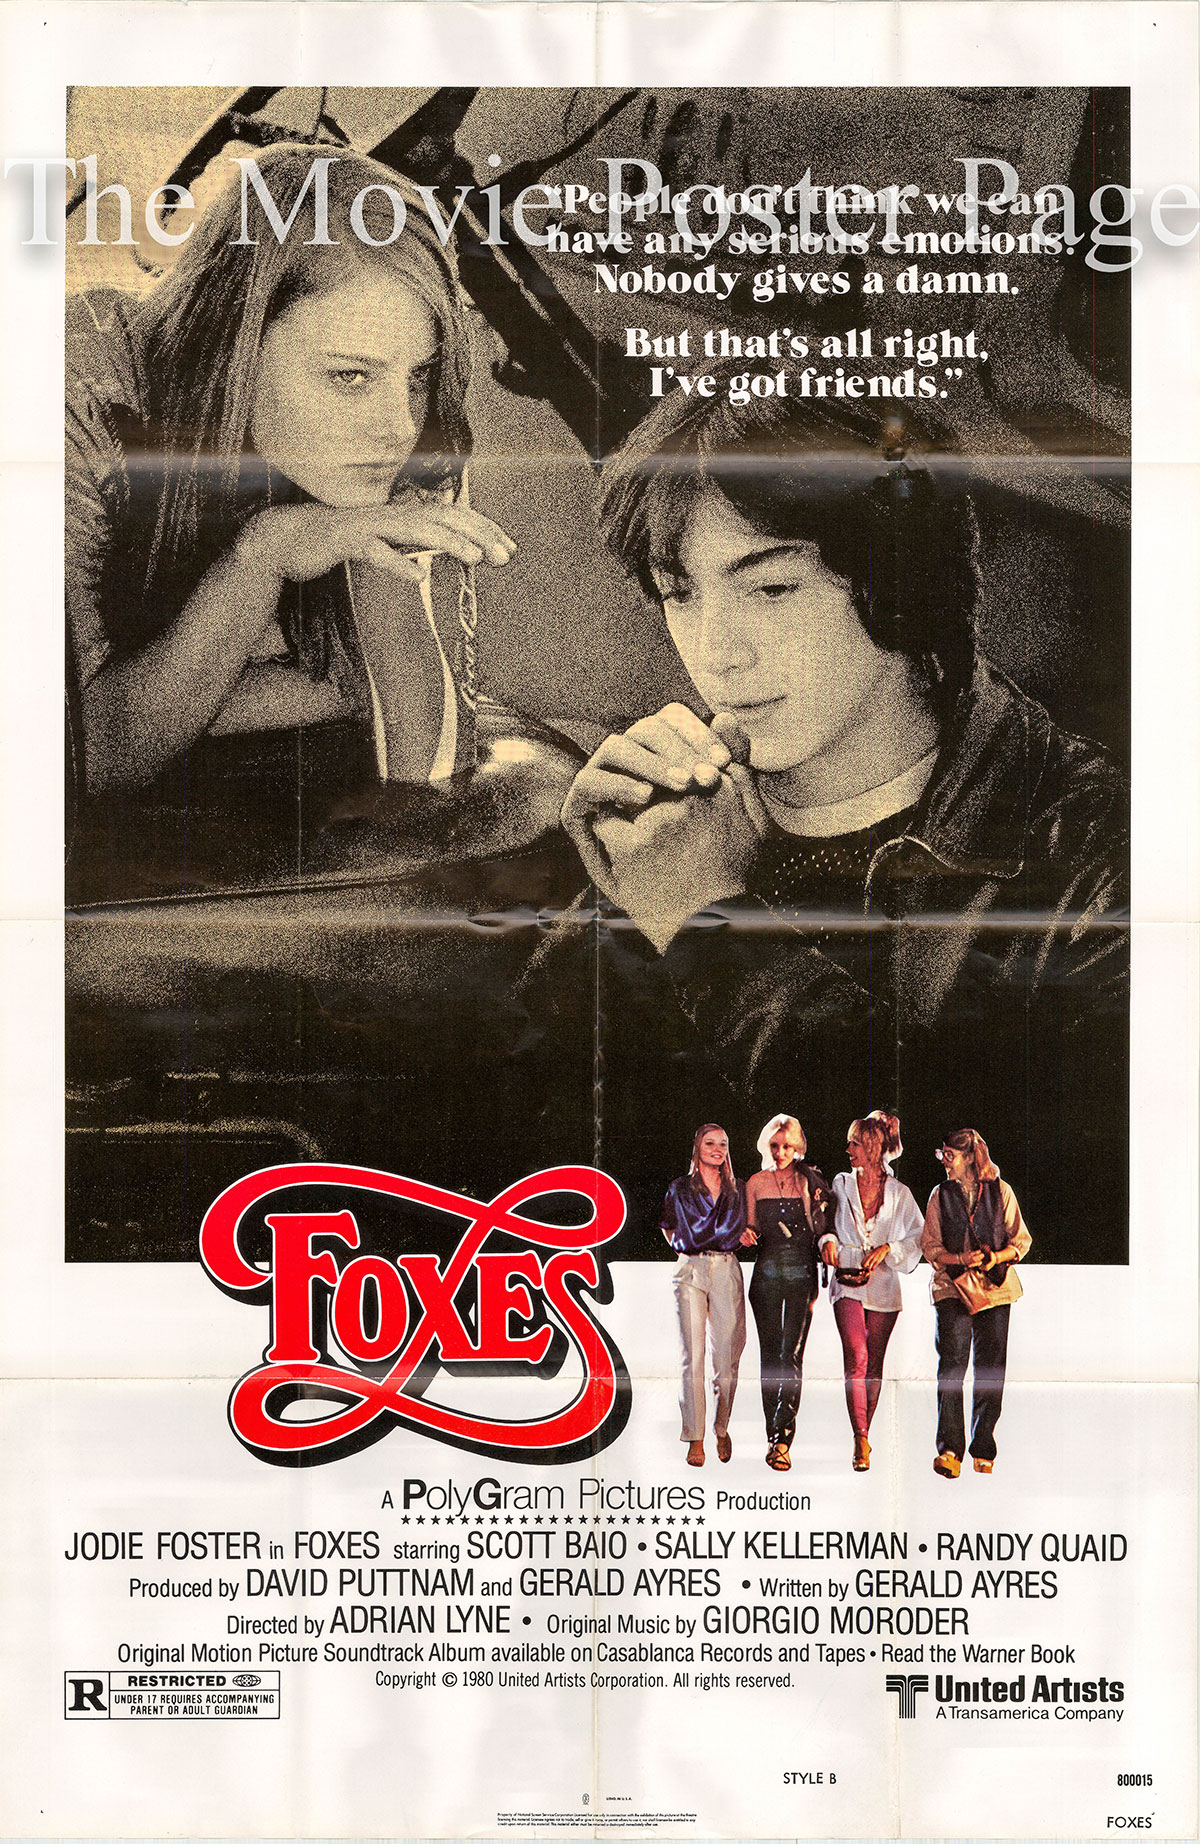 Pictured is a US one-sheet poster for the 1980 Adrian Lyne film Foxes starring Jodie Fosters.